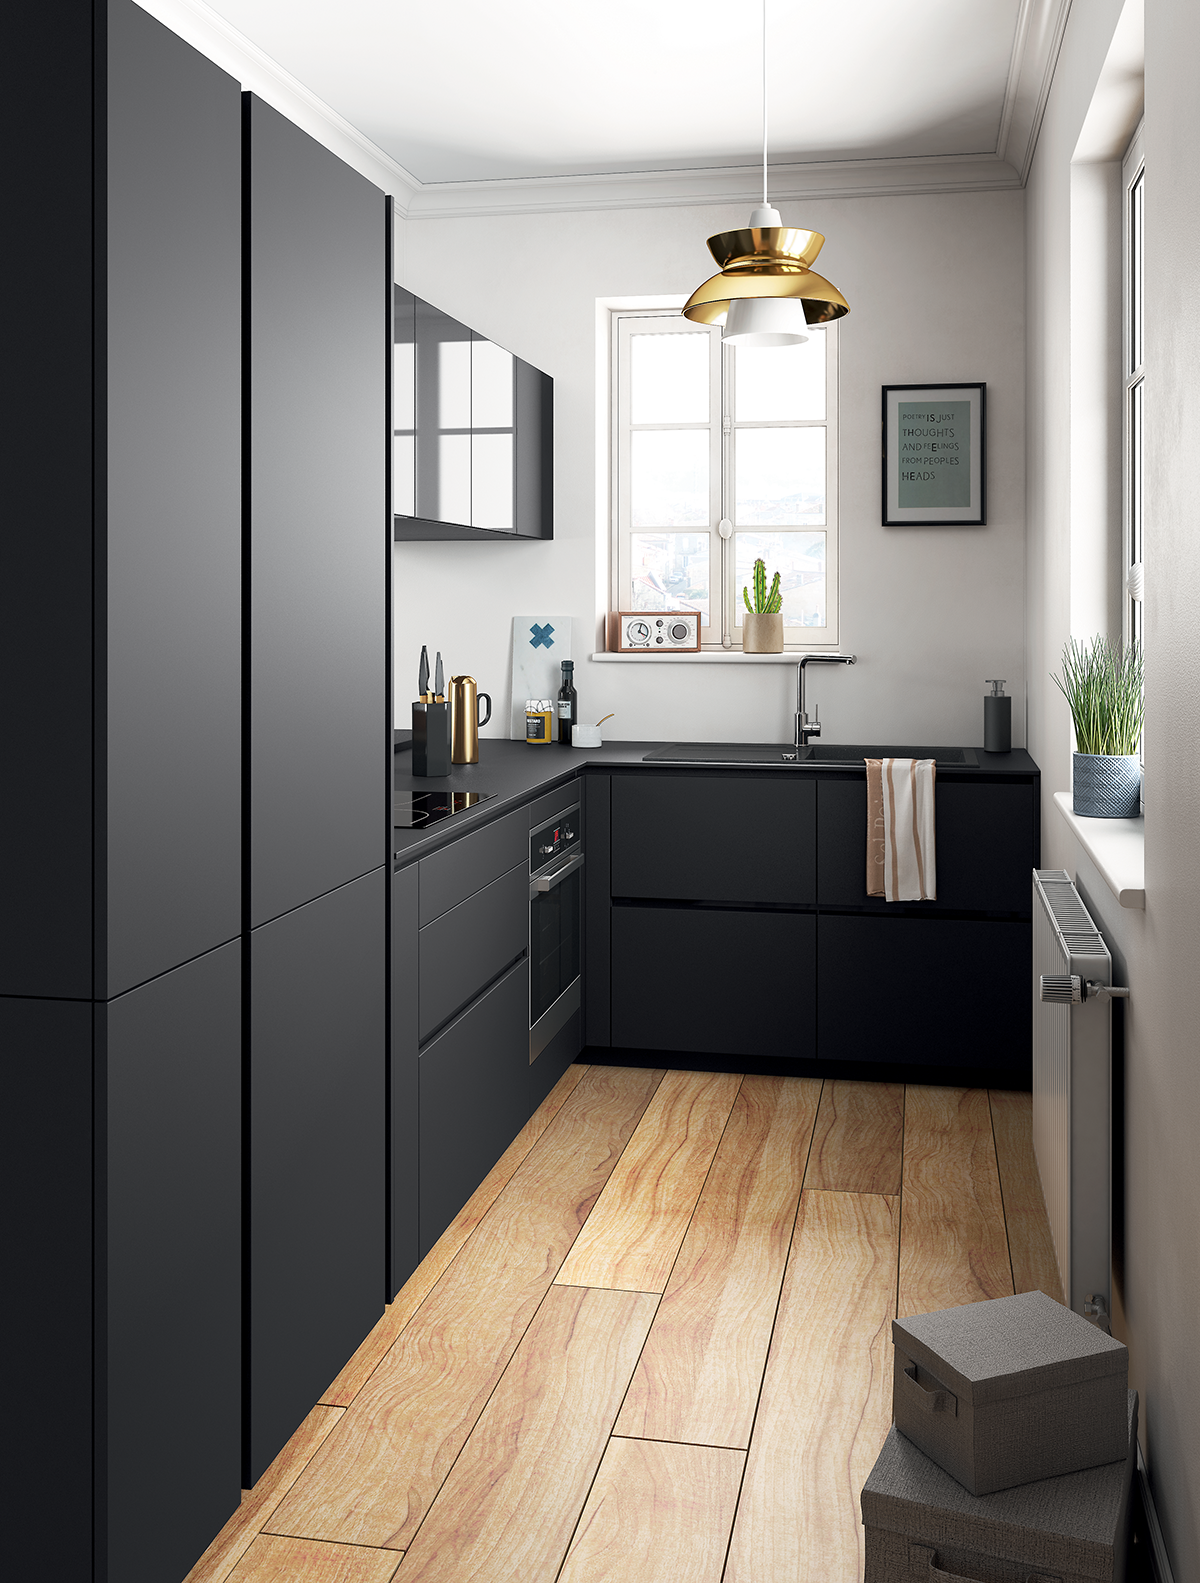 Modèles de cuisines kitchens matte black and interiors